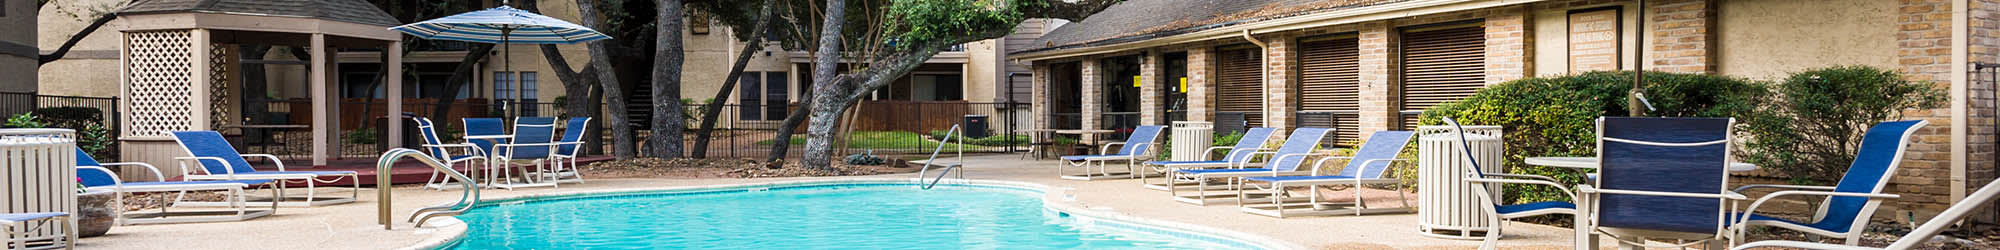 schedule a tour at Landera in San Antonio